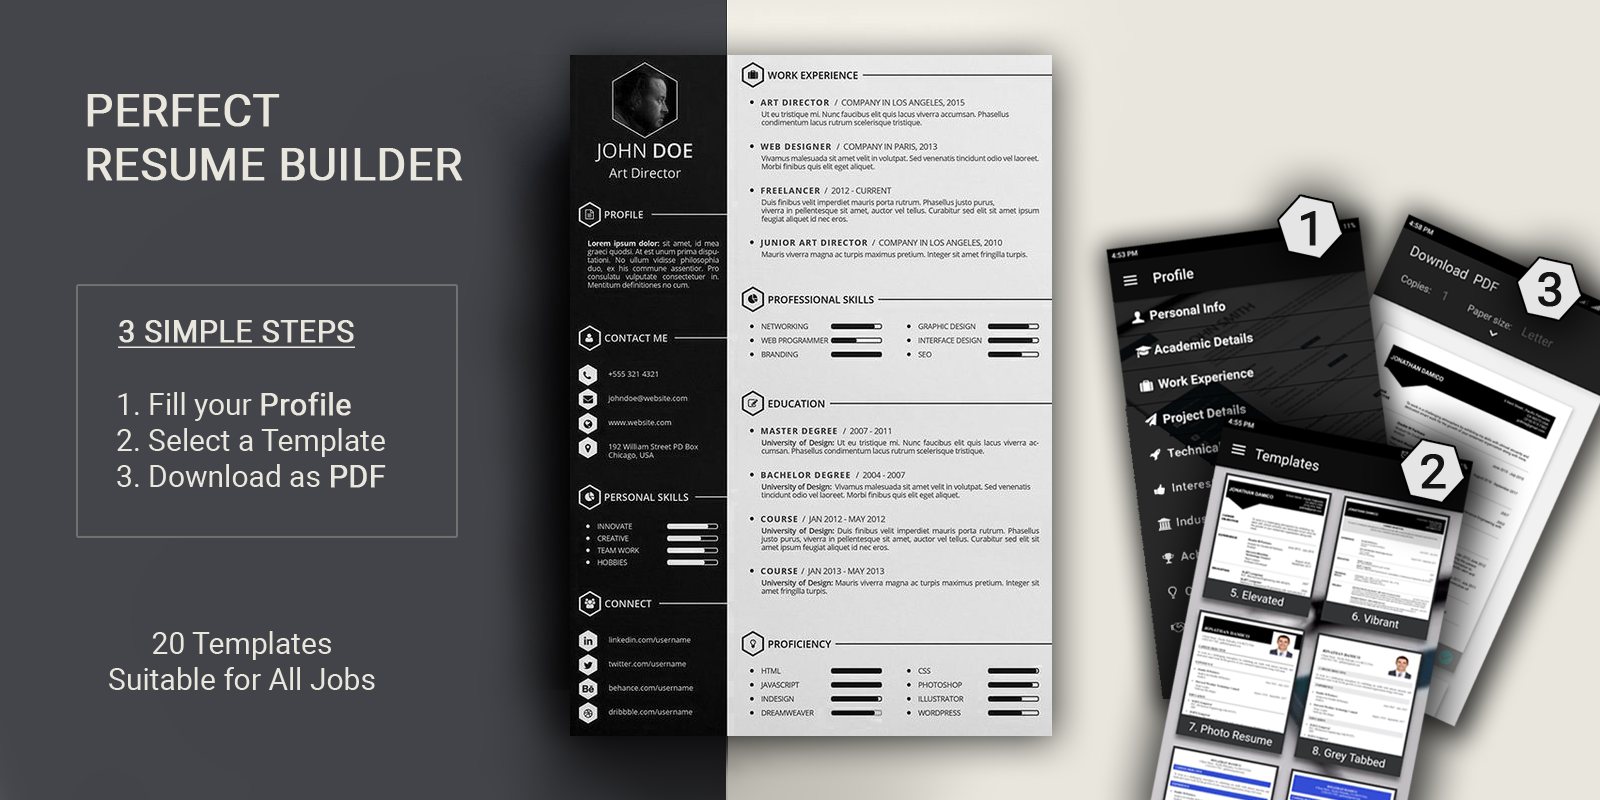 Free resume builder PDF formats CV maker templates  Android Apps on Google Play